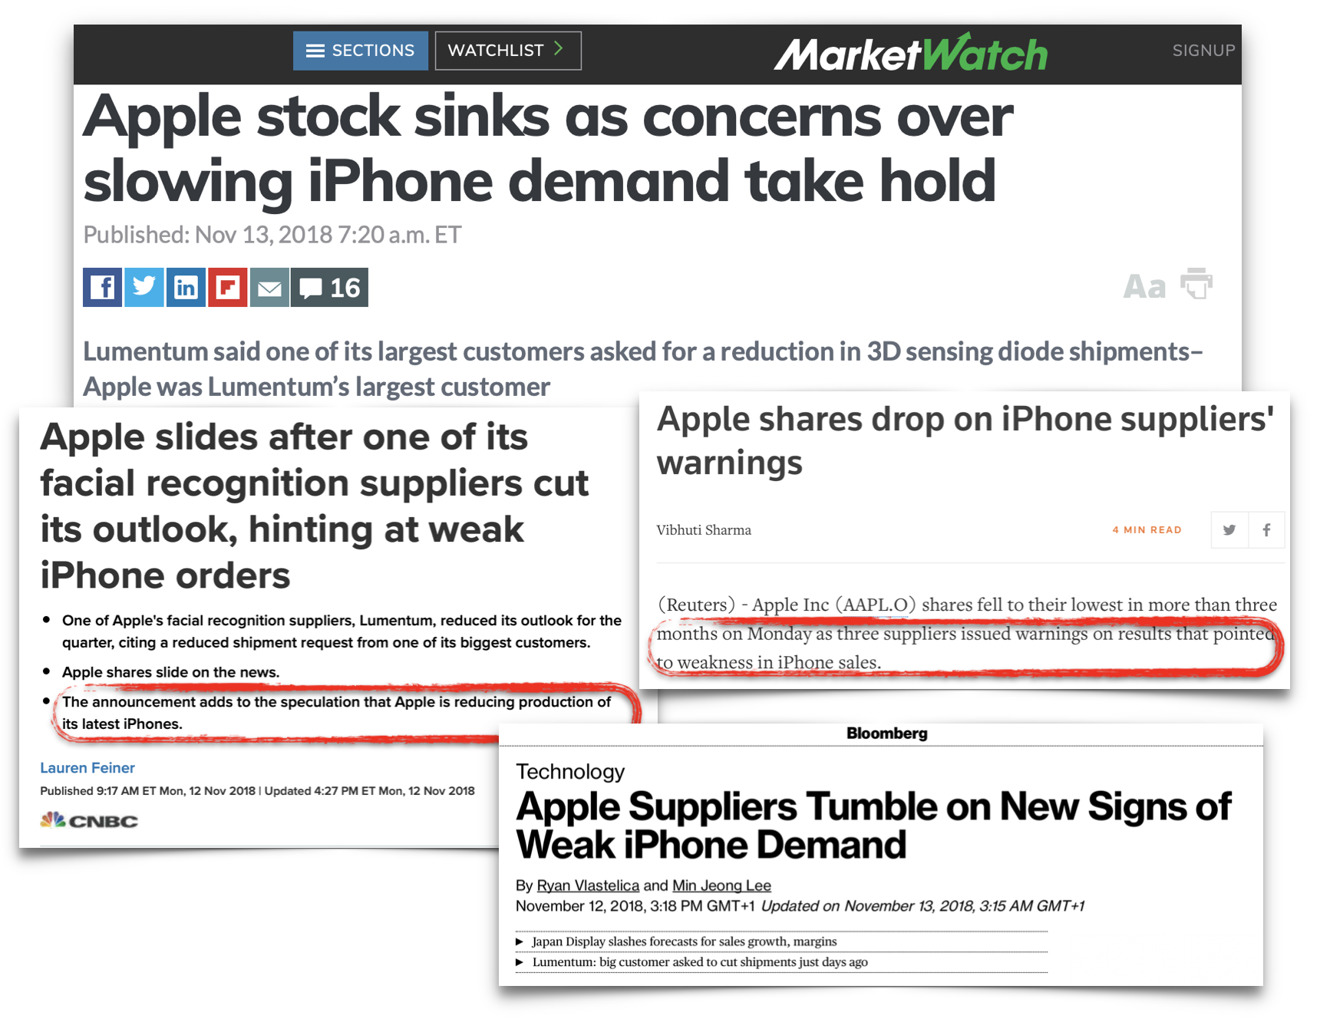 After Apple spelled out what was happening to the media, major news sites dribbled out idiot-level speculation instead